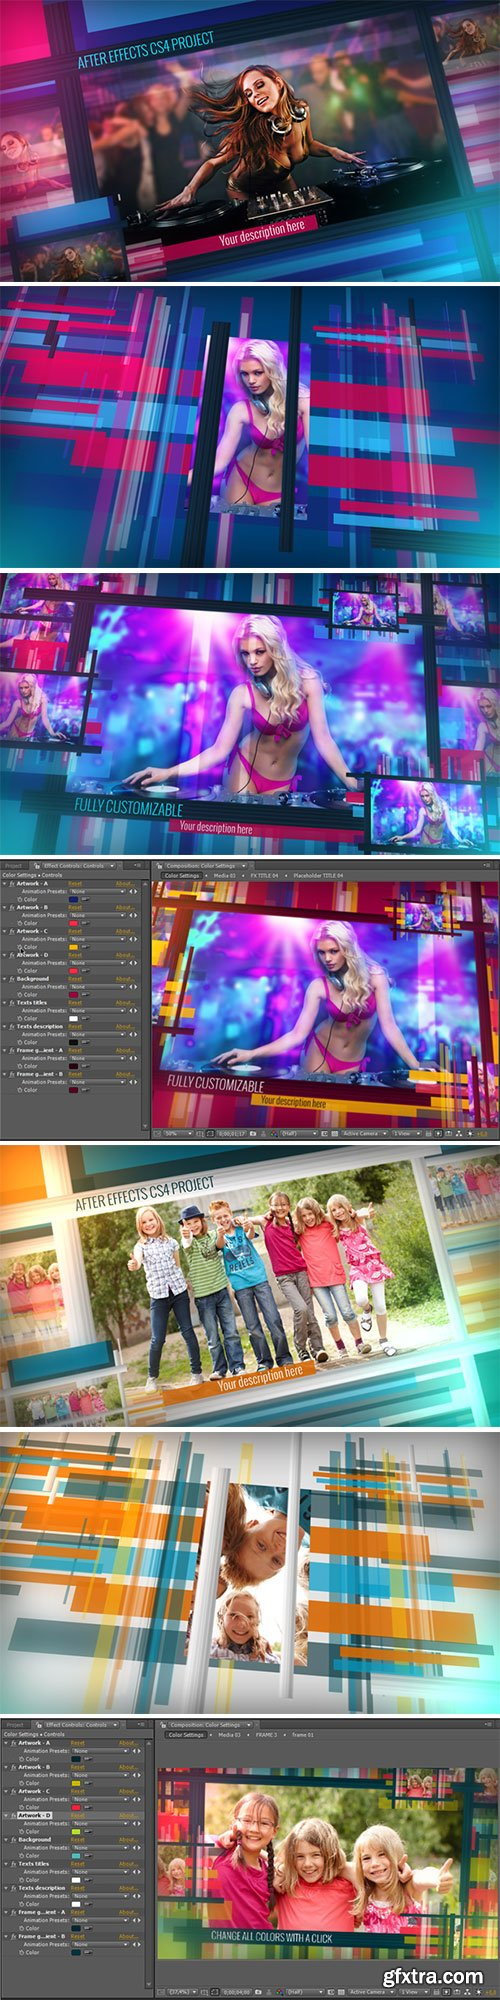 VideoHive - Chameleon Frames Photo Galleries 5100553